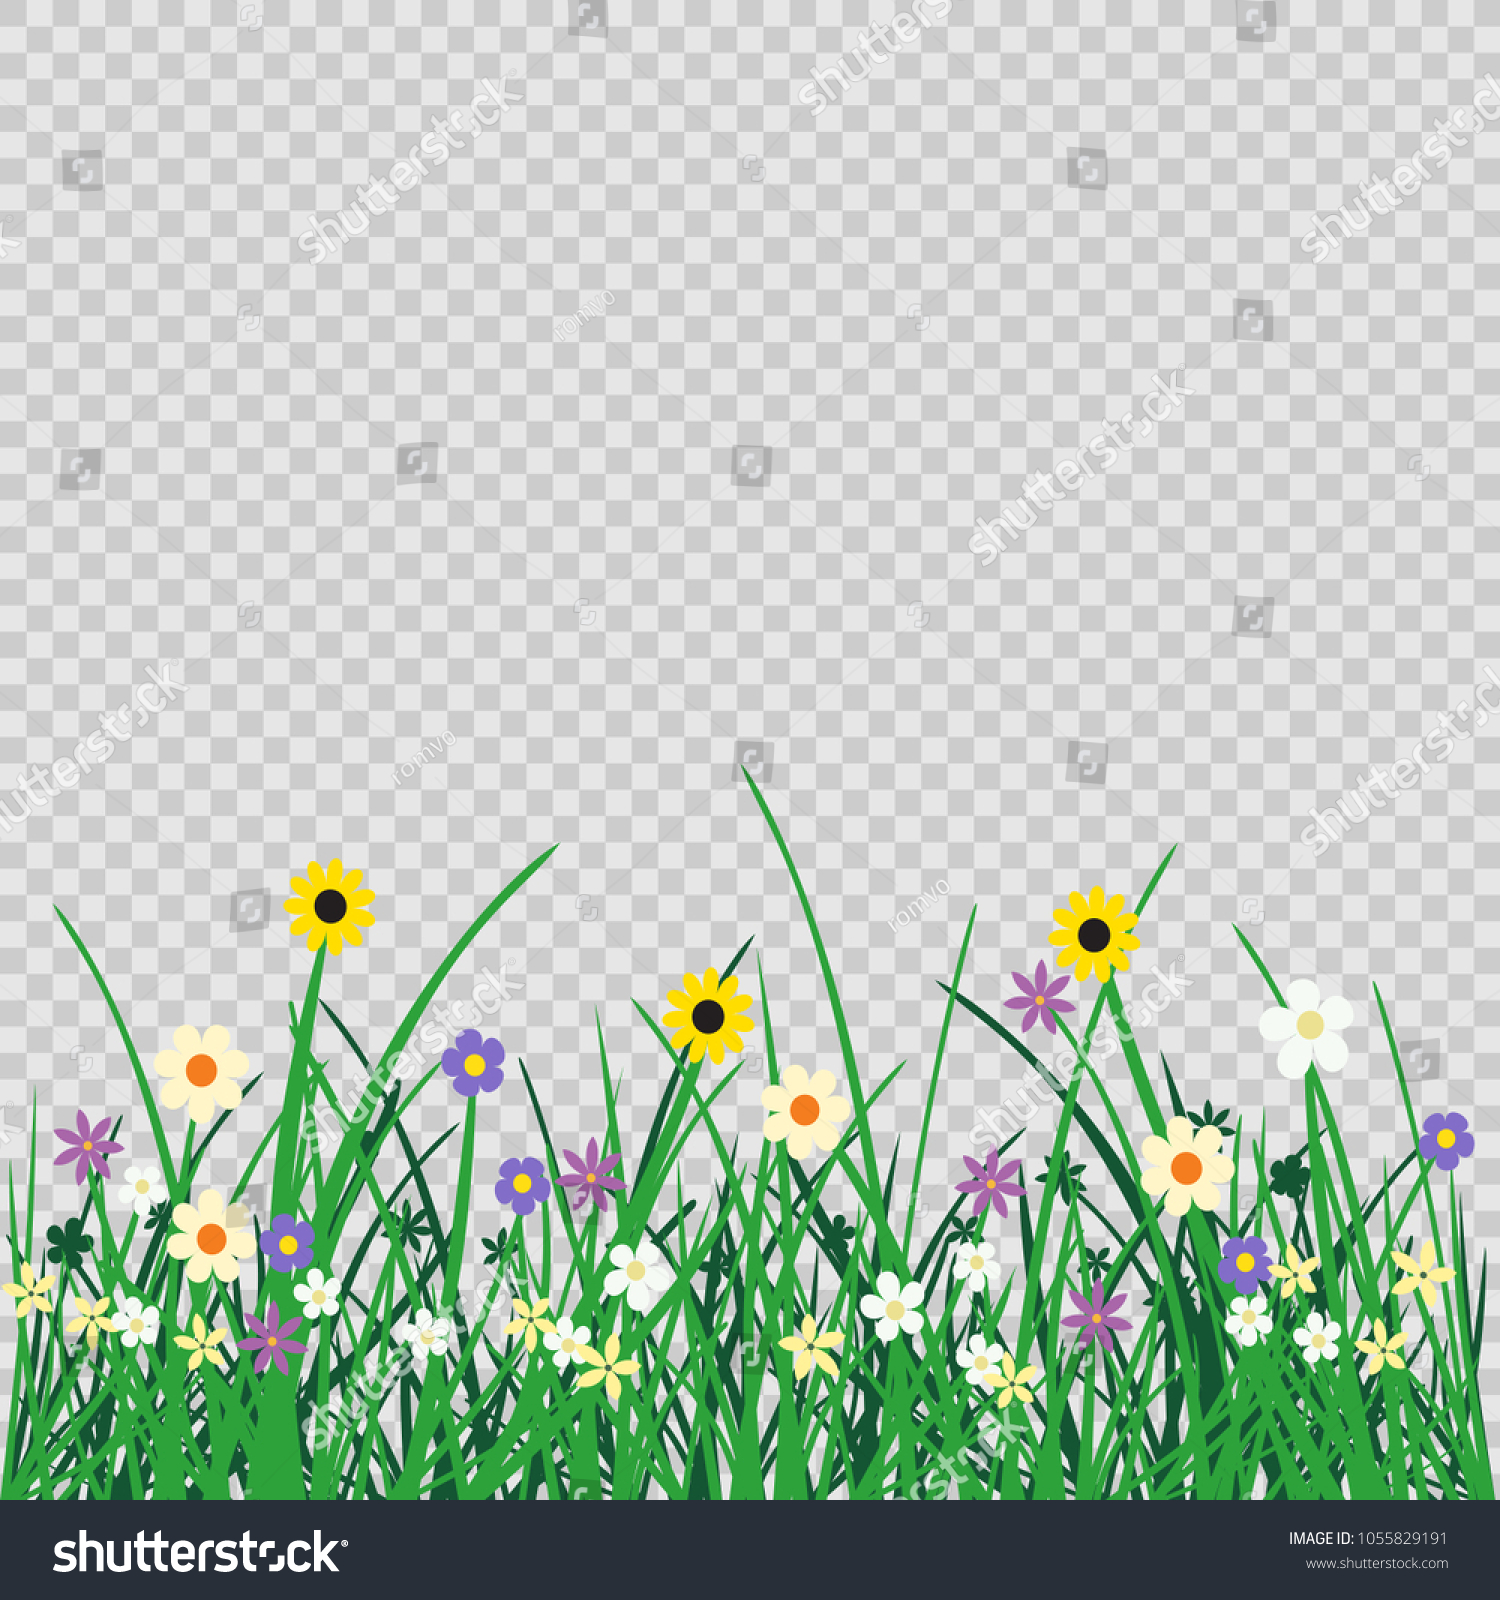 Wild Flowers Plant Grass On Transparent Stock Vector HD (Royalty ...